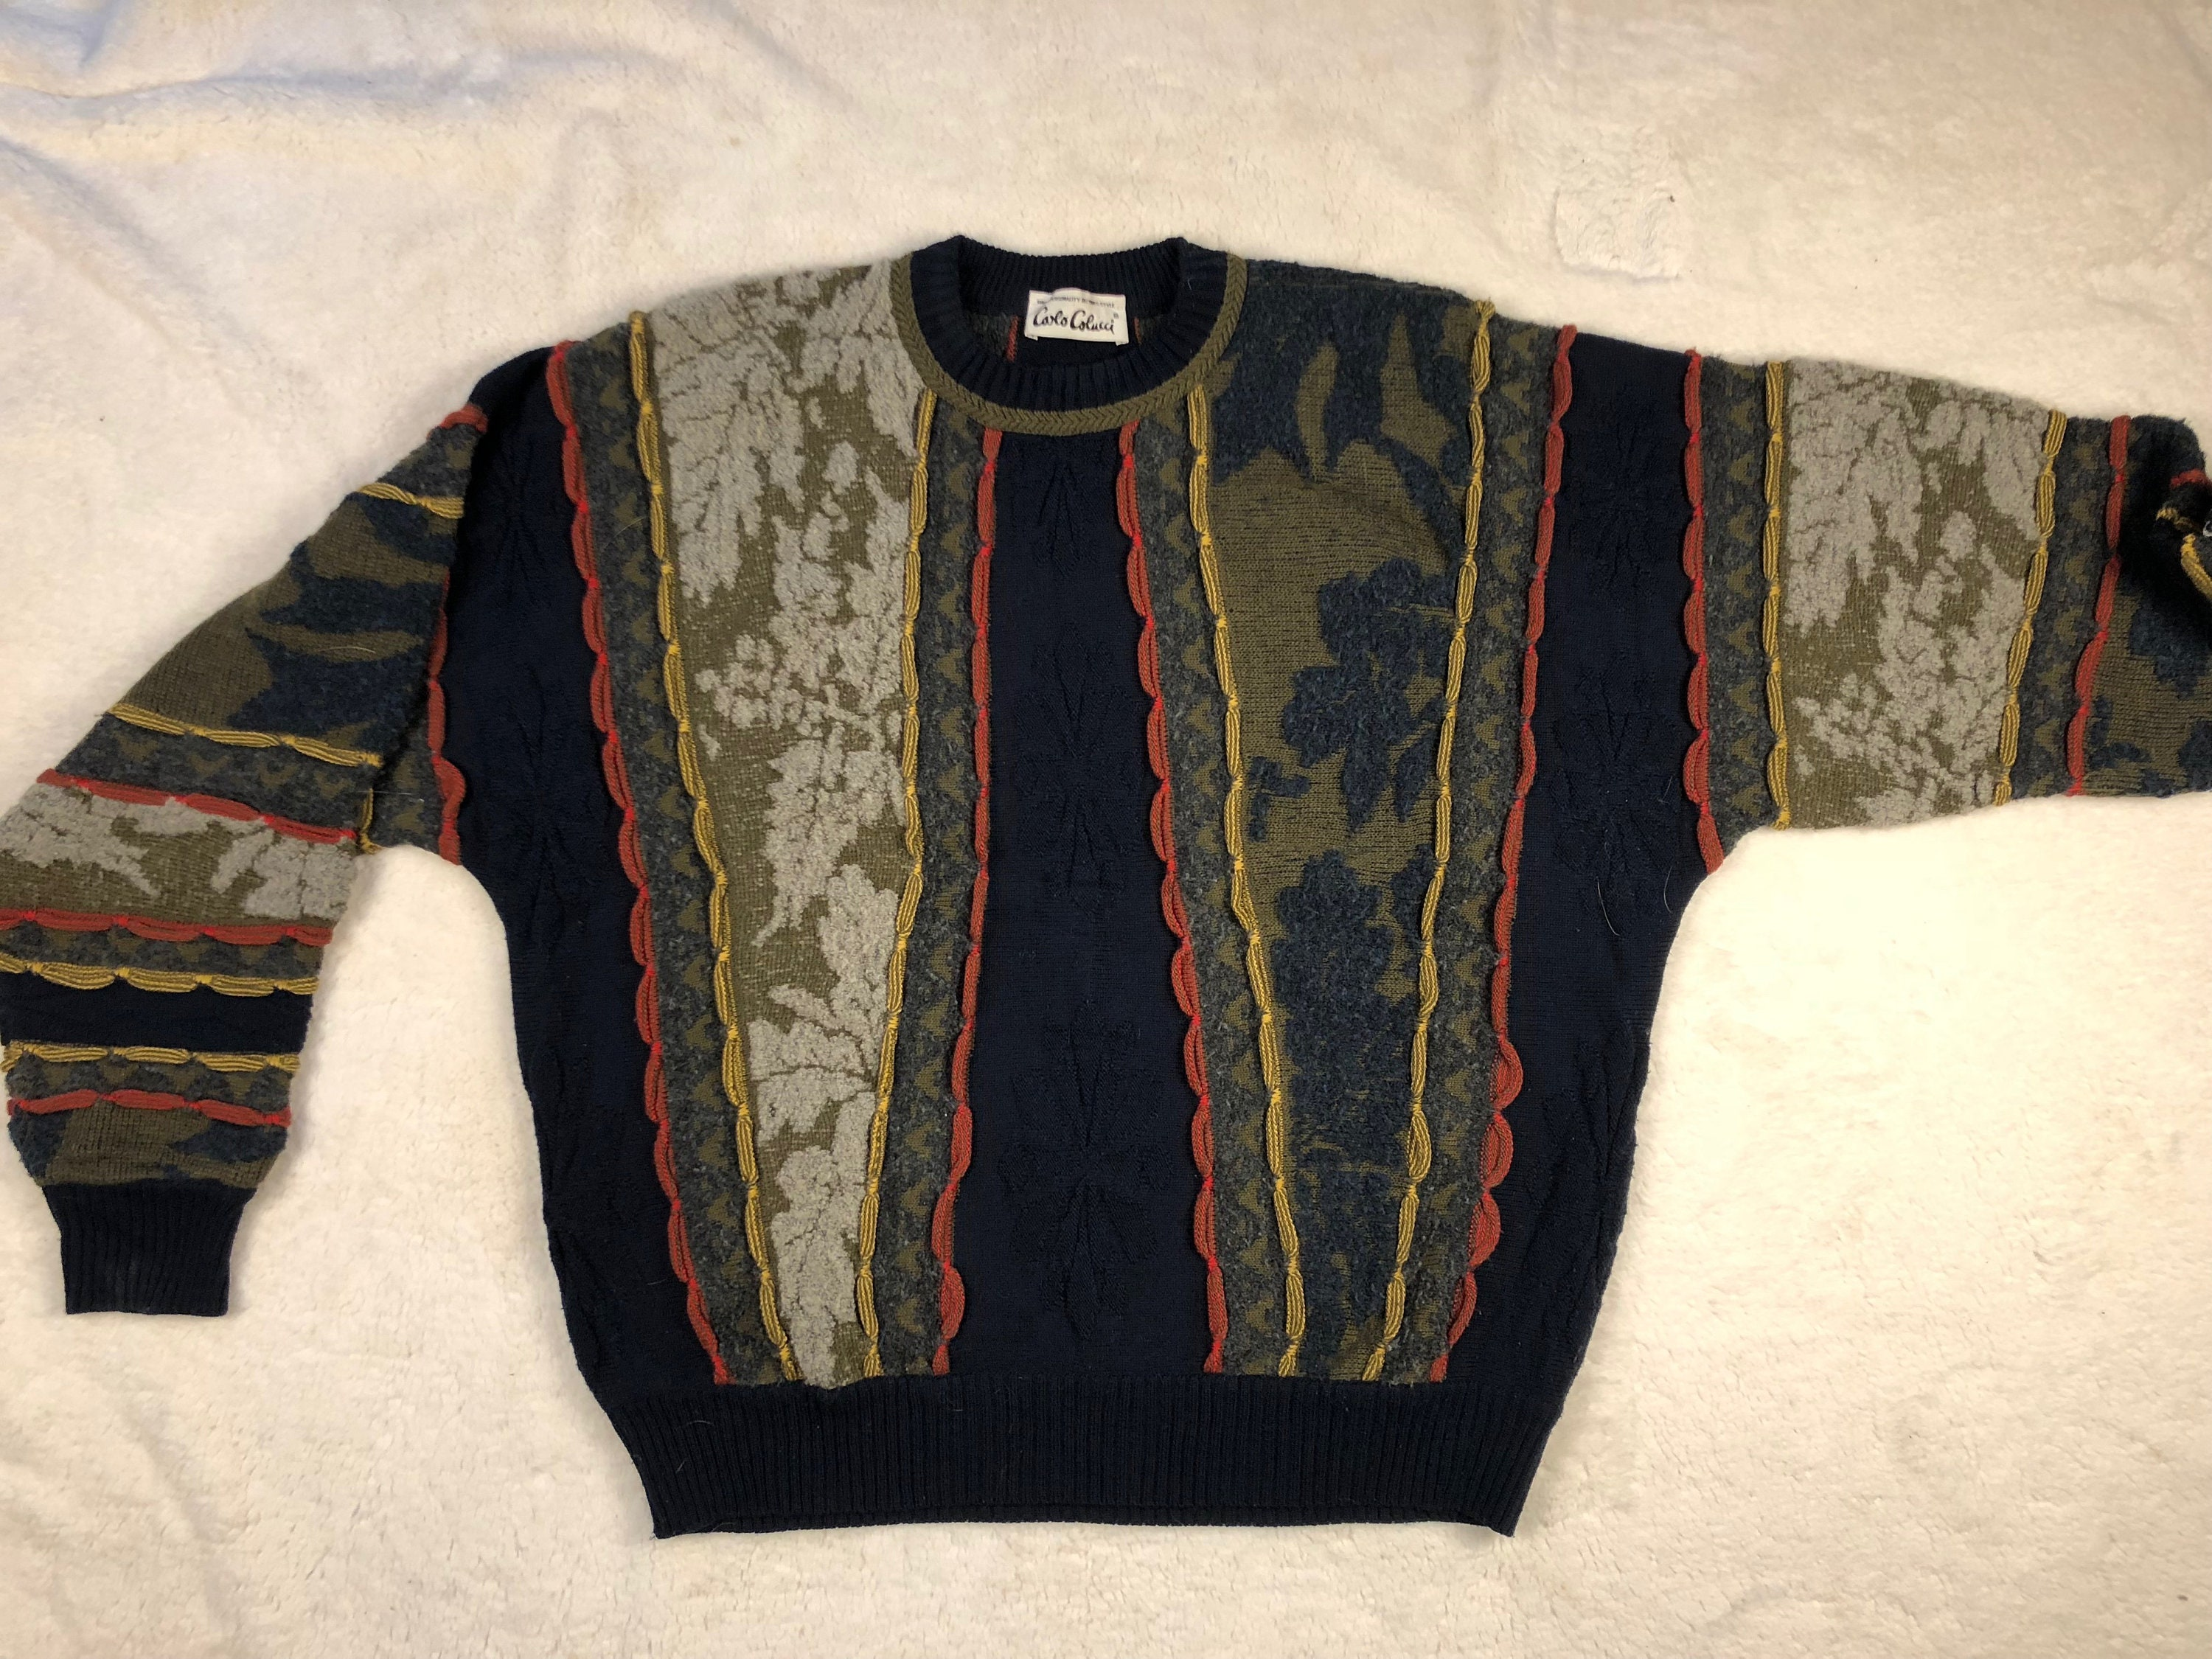 Vintage pull CARLO COLUCCI hommes laine pull Vintage taille L 48 380b13 dacbac71c7c6